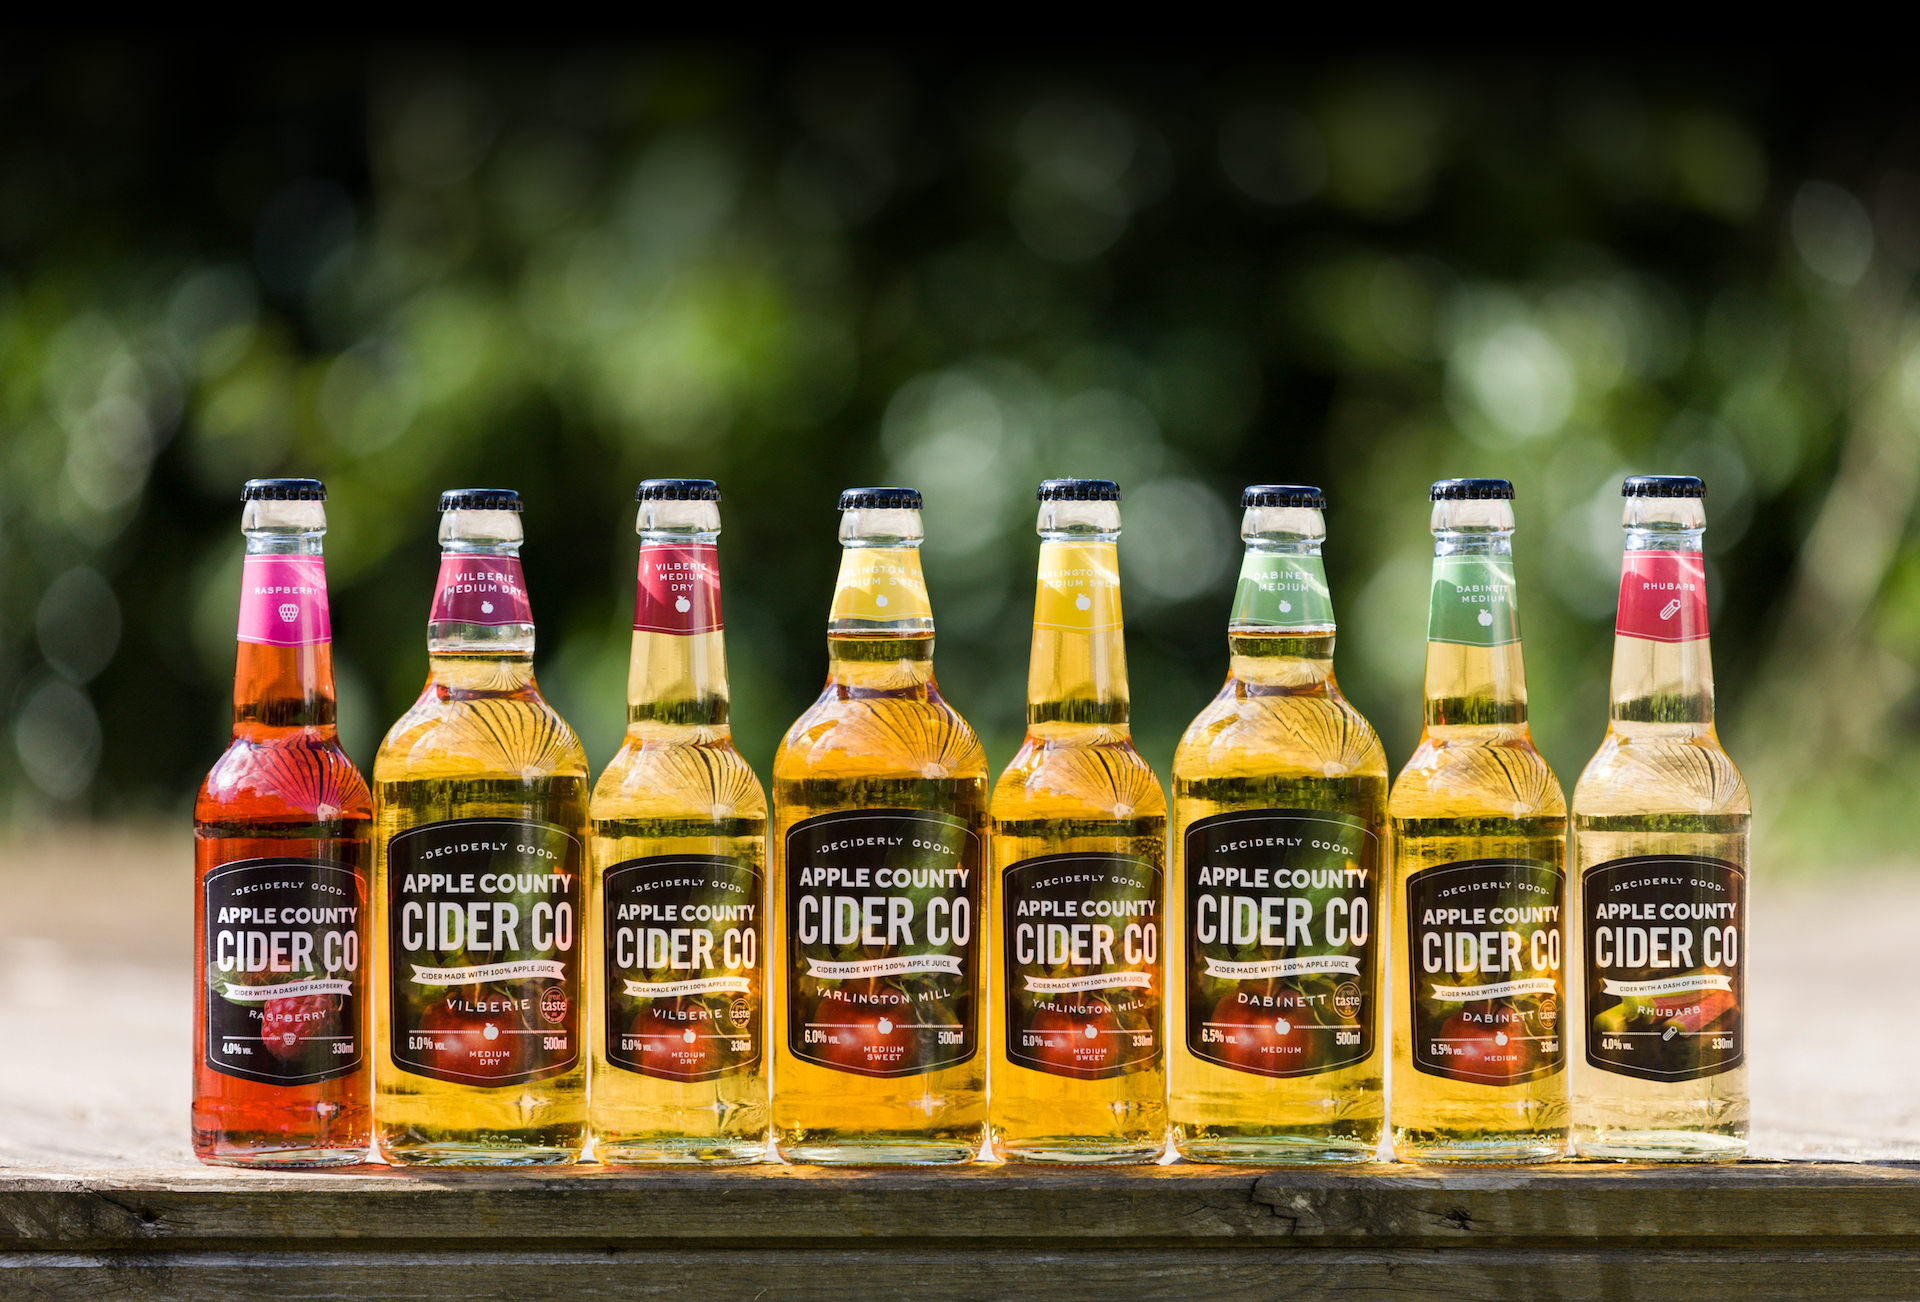 The full range of 2017 Apple County Cider Company ciders in bottles